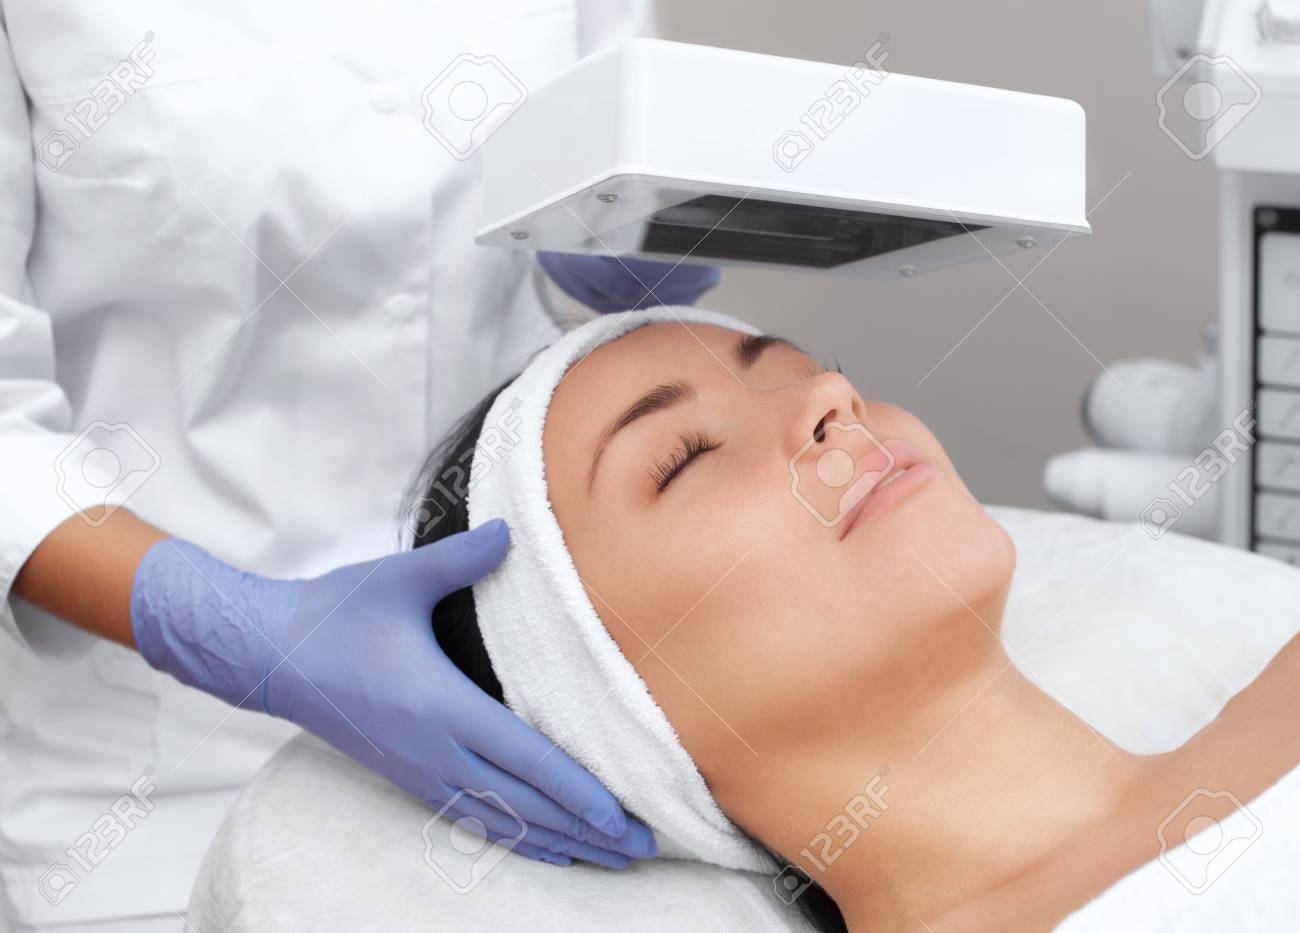 The cosmetologist uses the Wood Lamp for detailed diagnosis of the skin condition. The device detects the presence of skin diseases or inflamed areas. Cosmetology and professional care. - 102697566